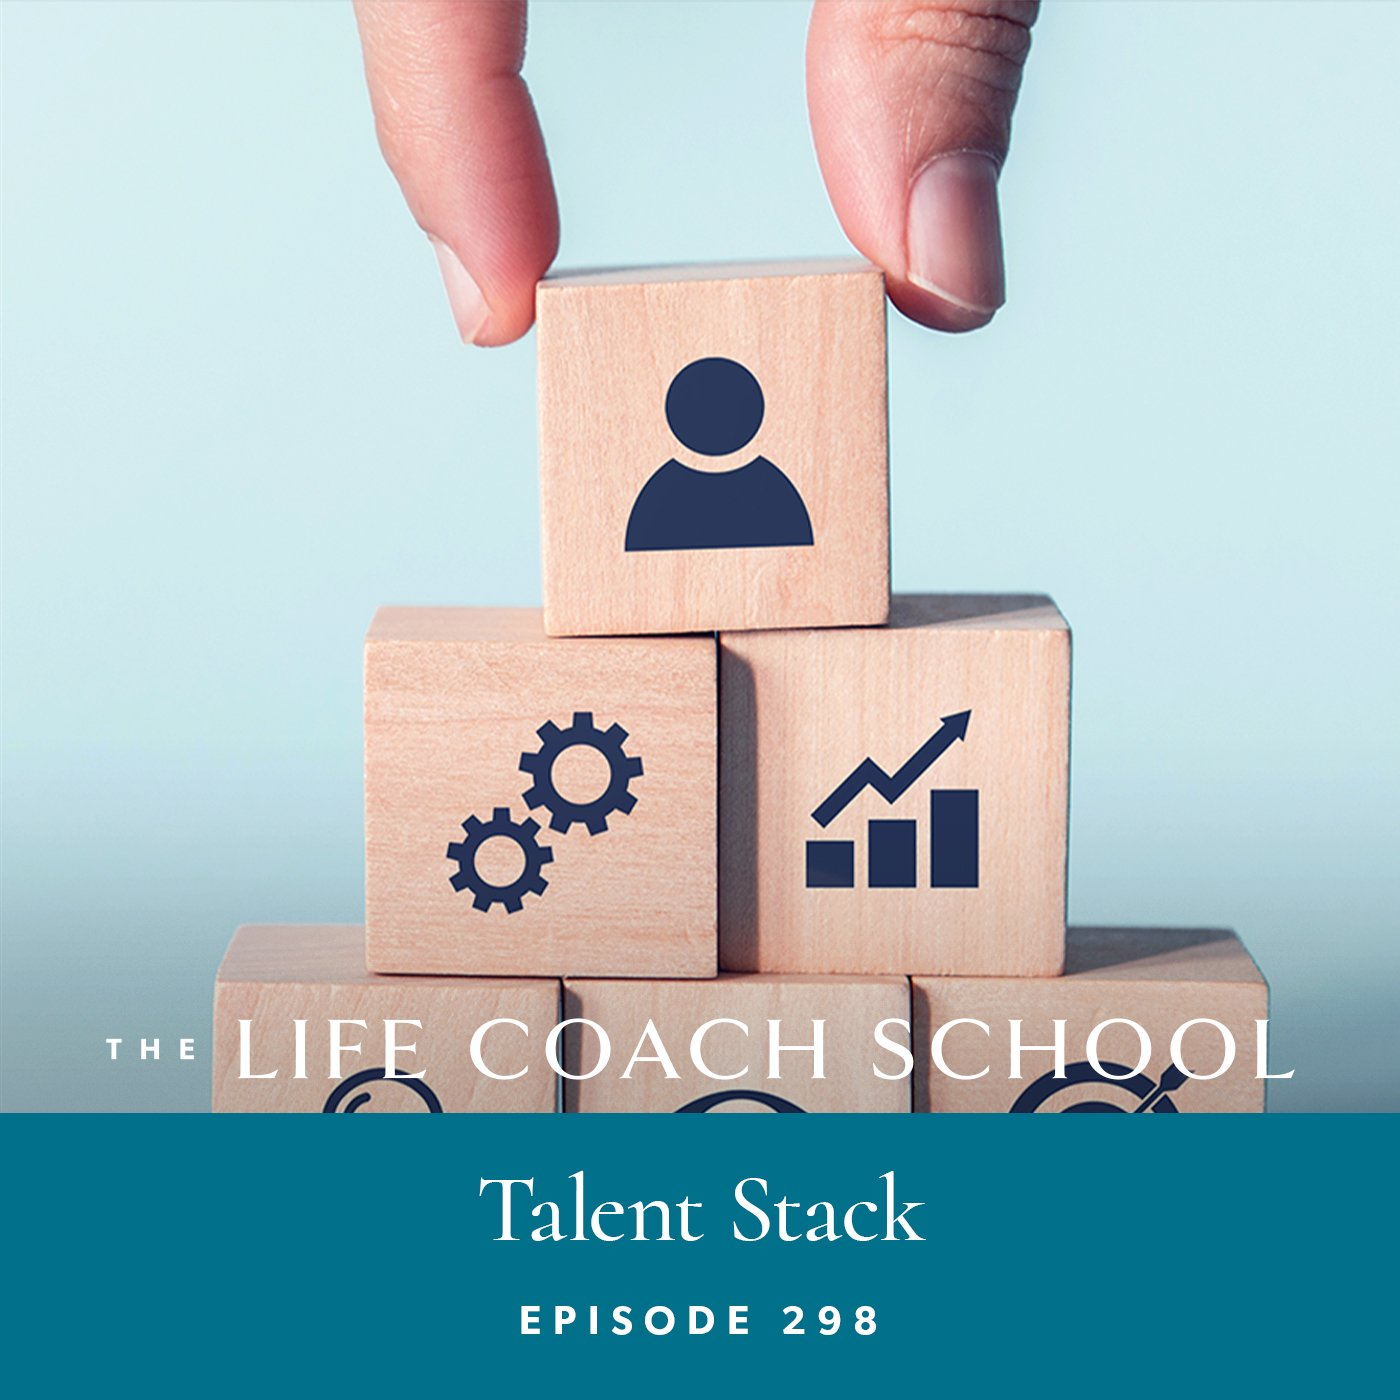 The Life Coach School Podcast with Brooke Castillo | Episode 298 | Talent Stack